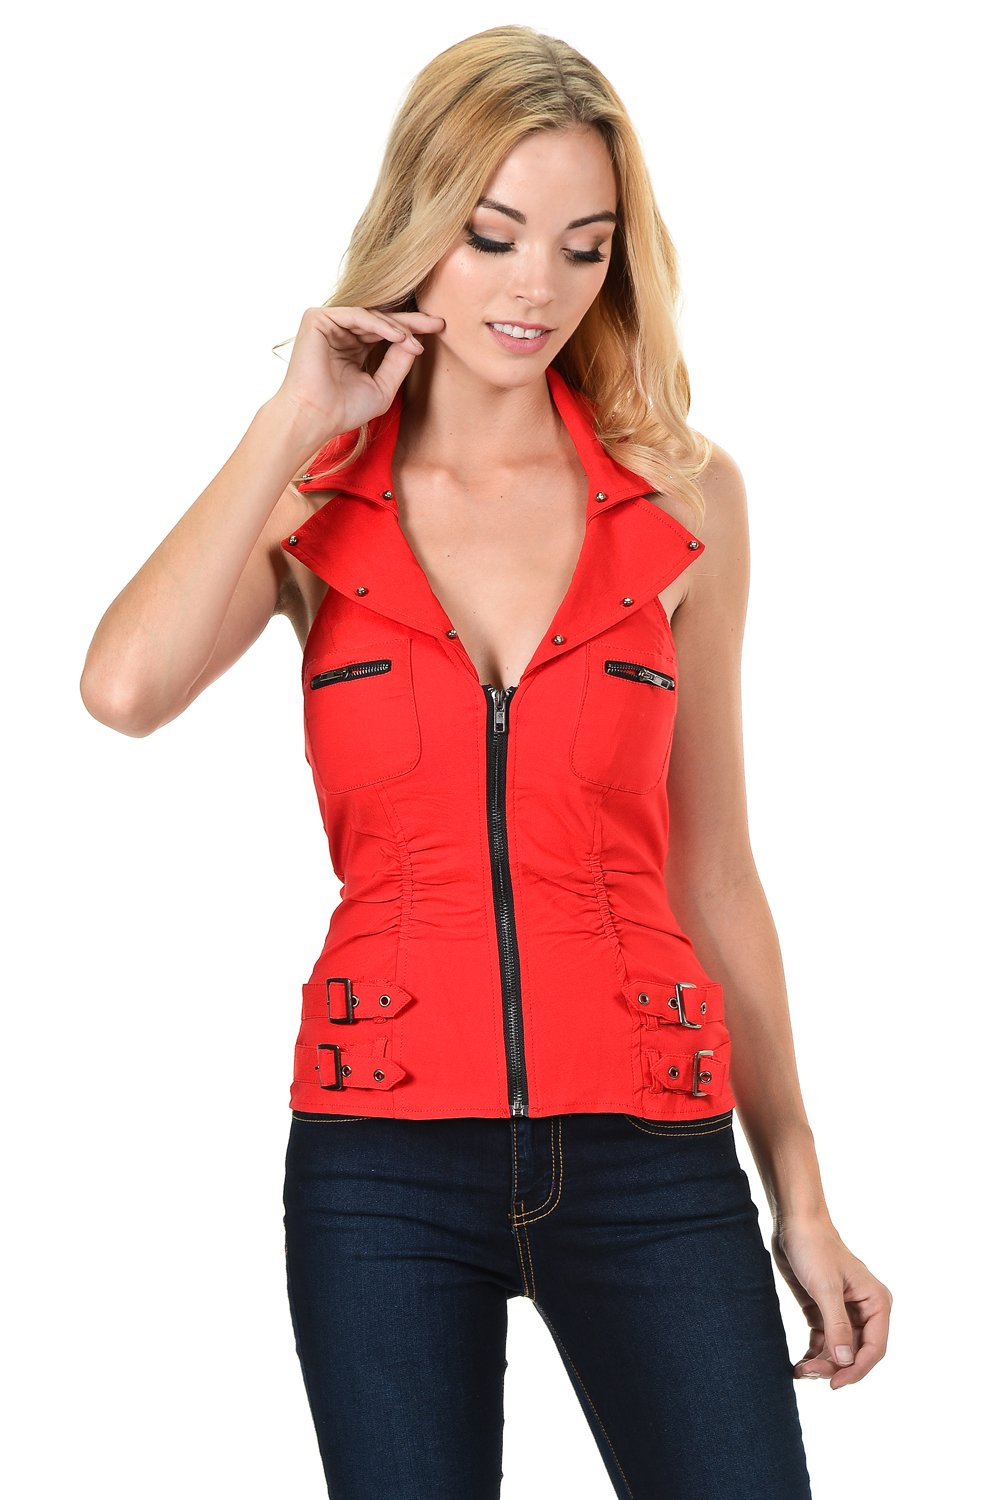 Sexy Stretched Rhinestones Collar Halter Rave Club Wear Bustier Zipper Vest Top (Large, Red)